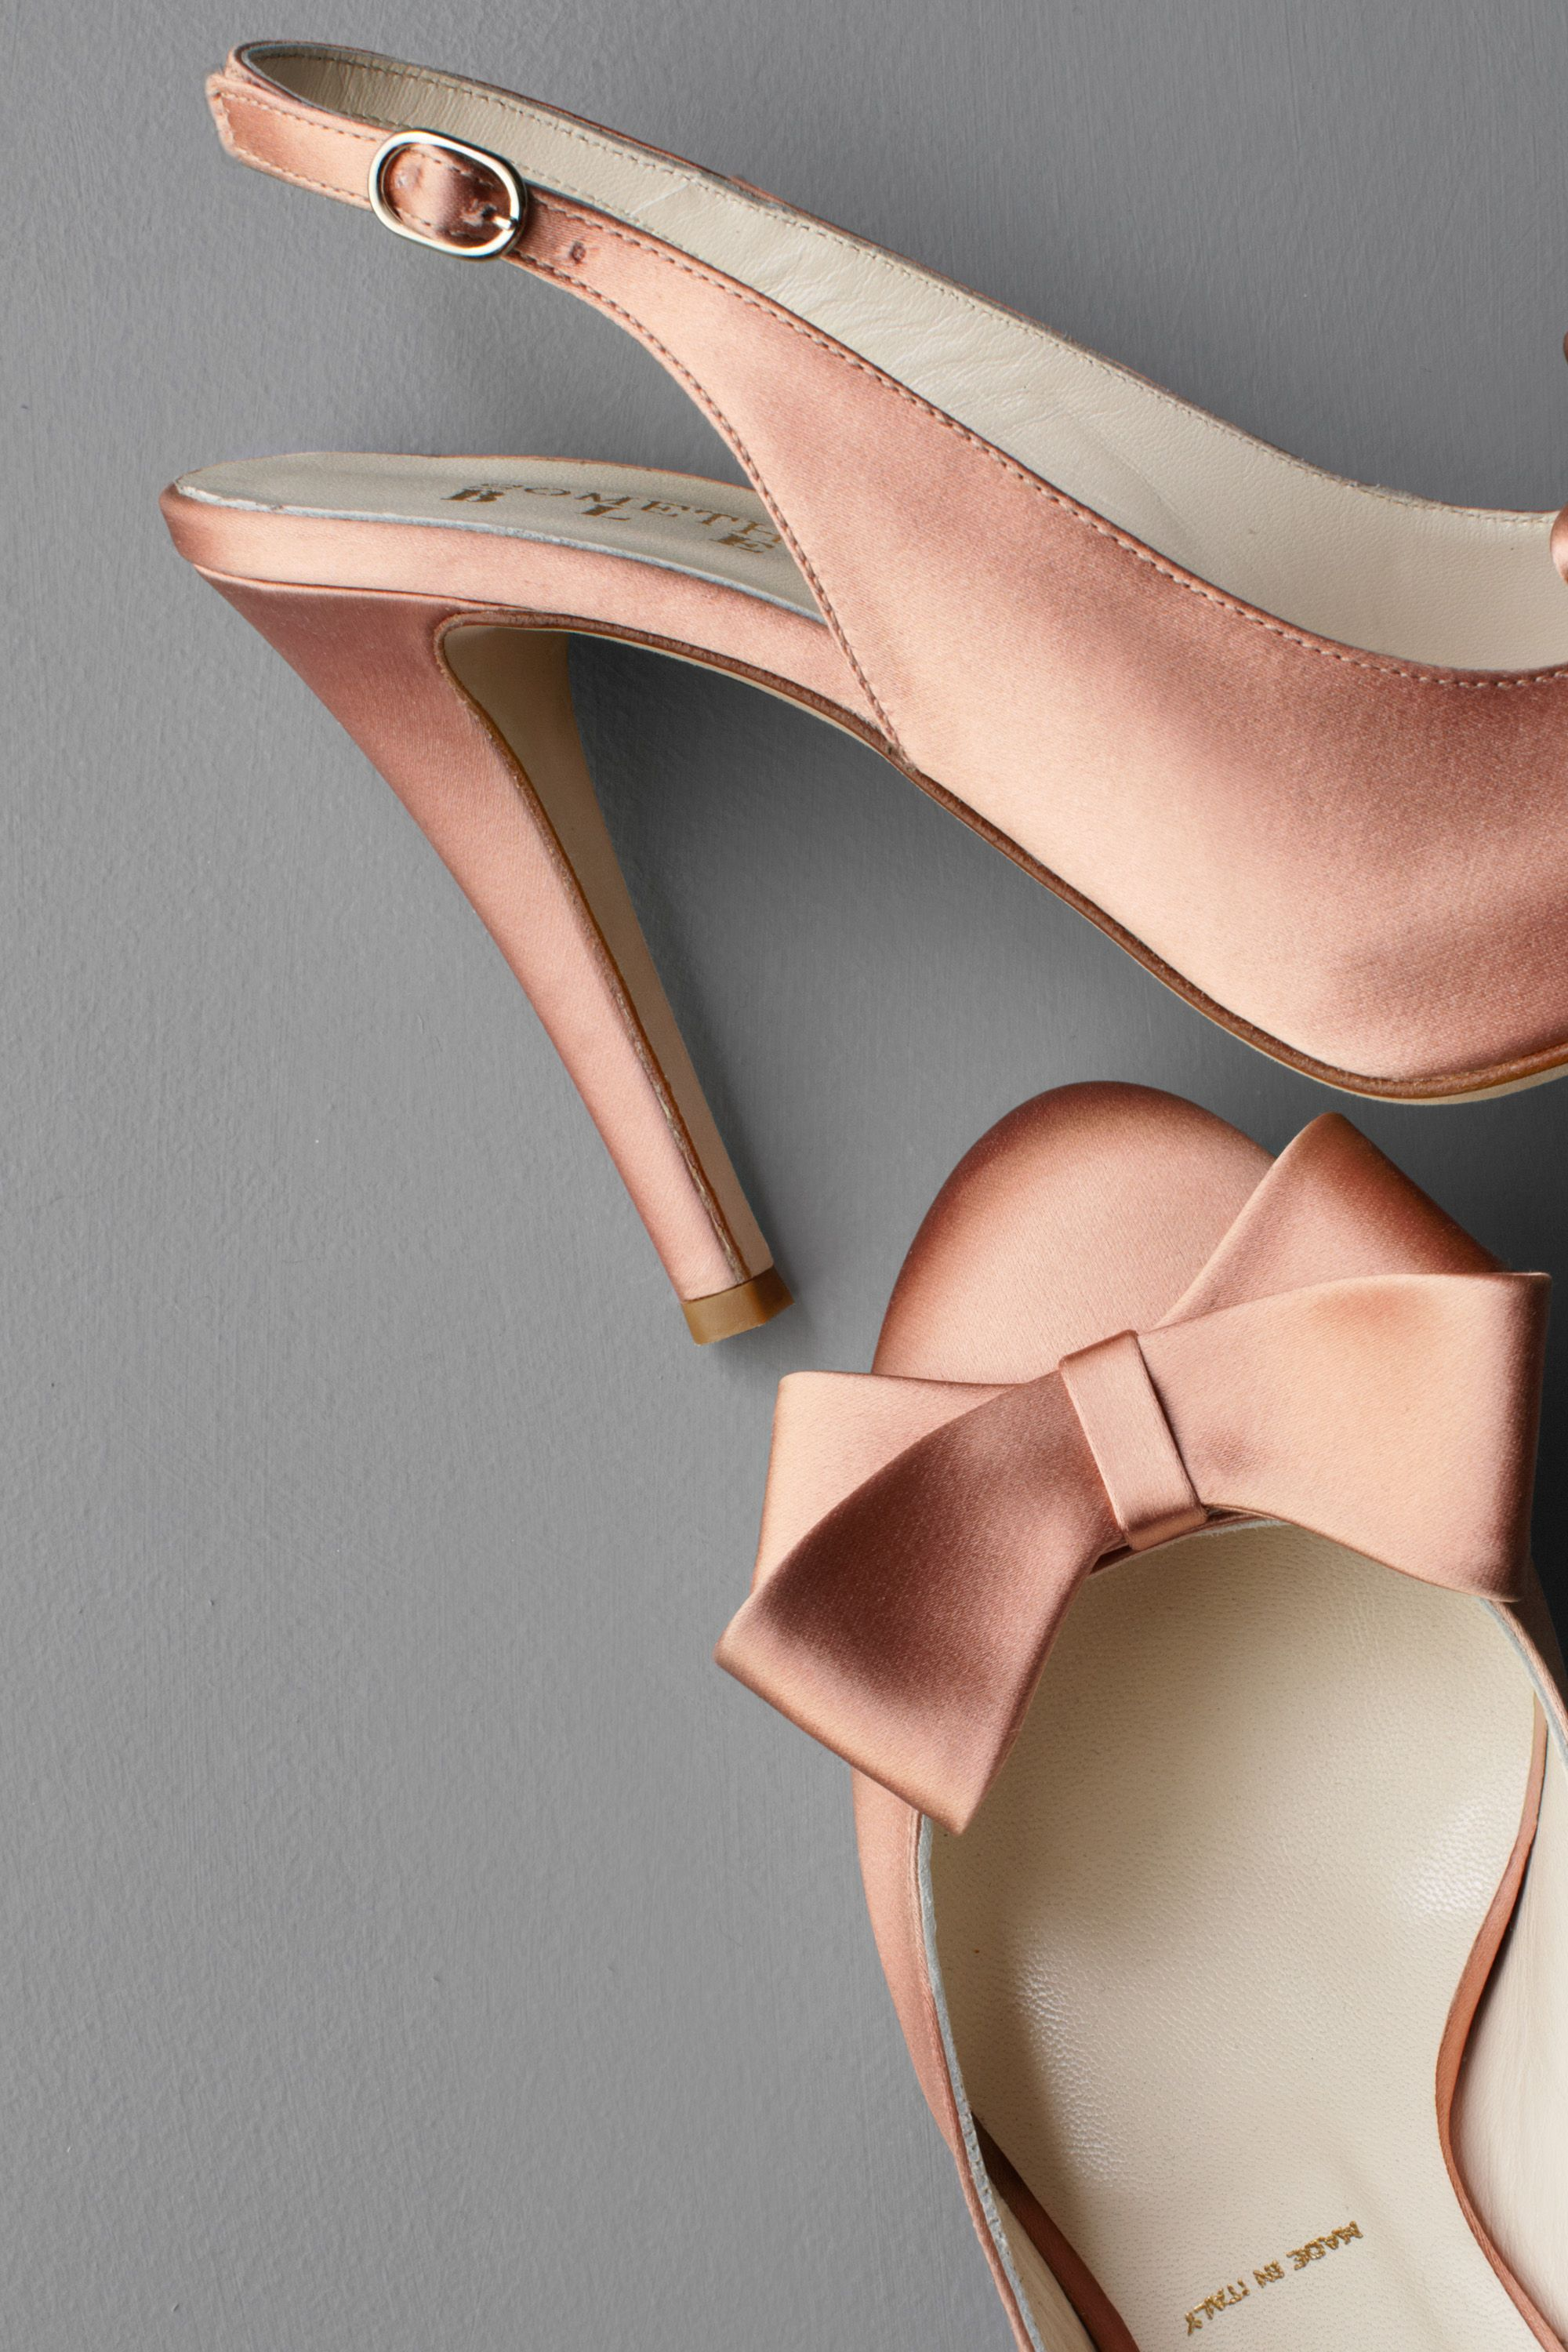 Nudelook Satin Shoes Rose Bow Zalando Shoes Pinterest